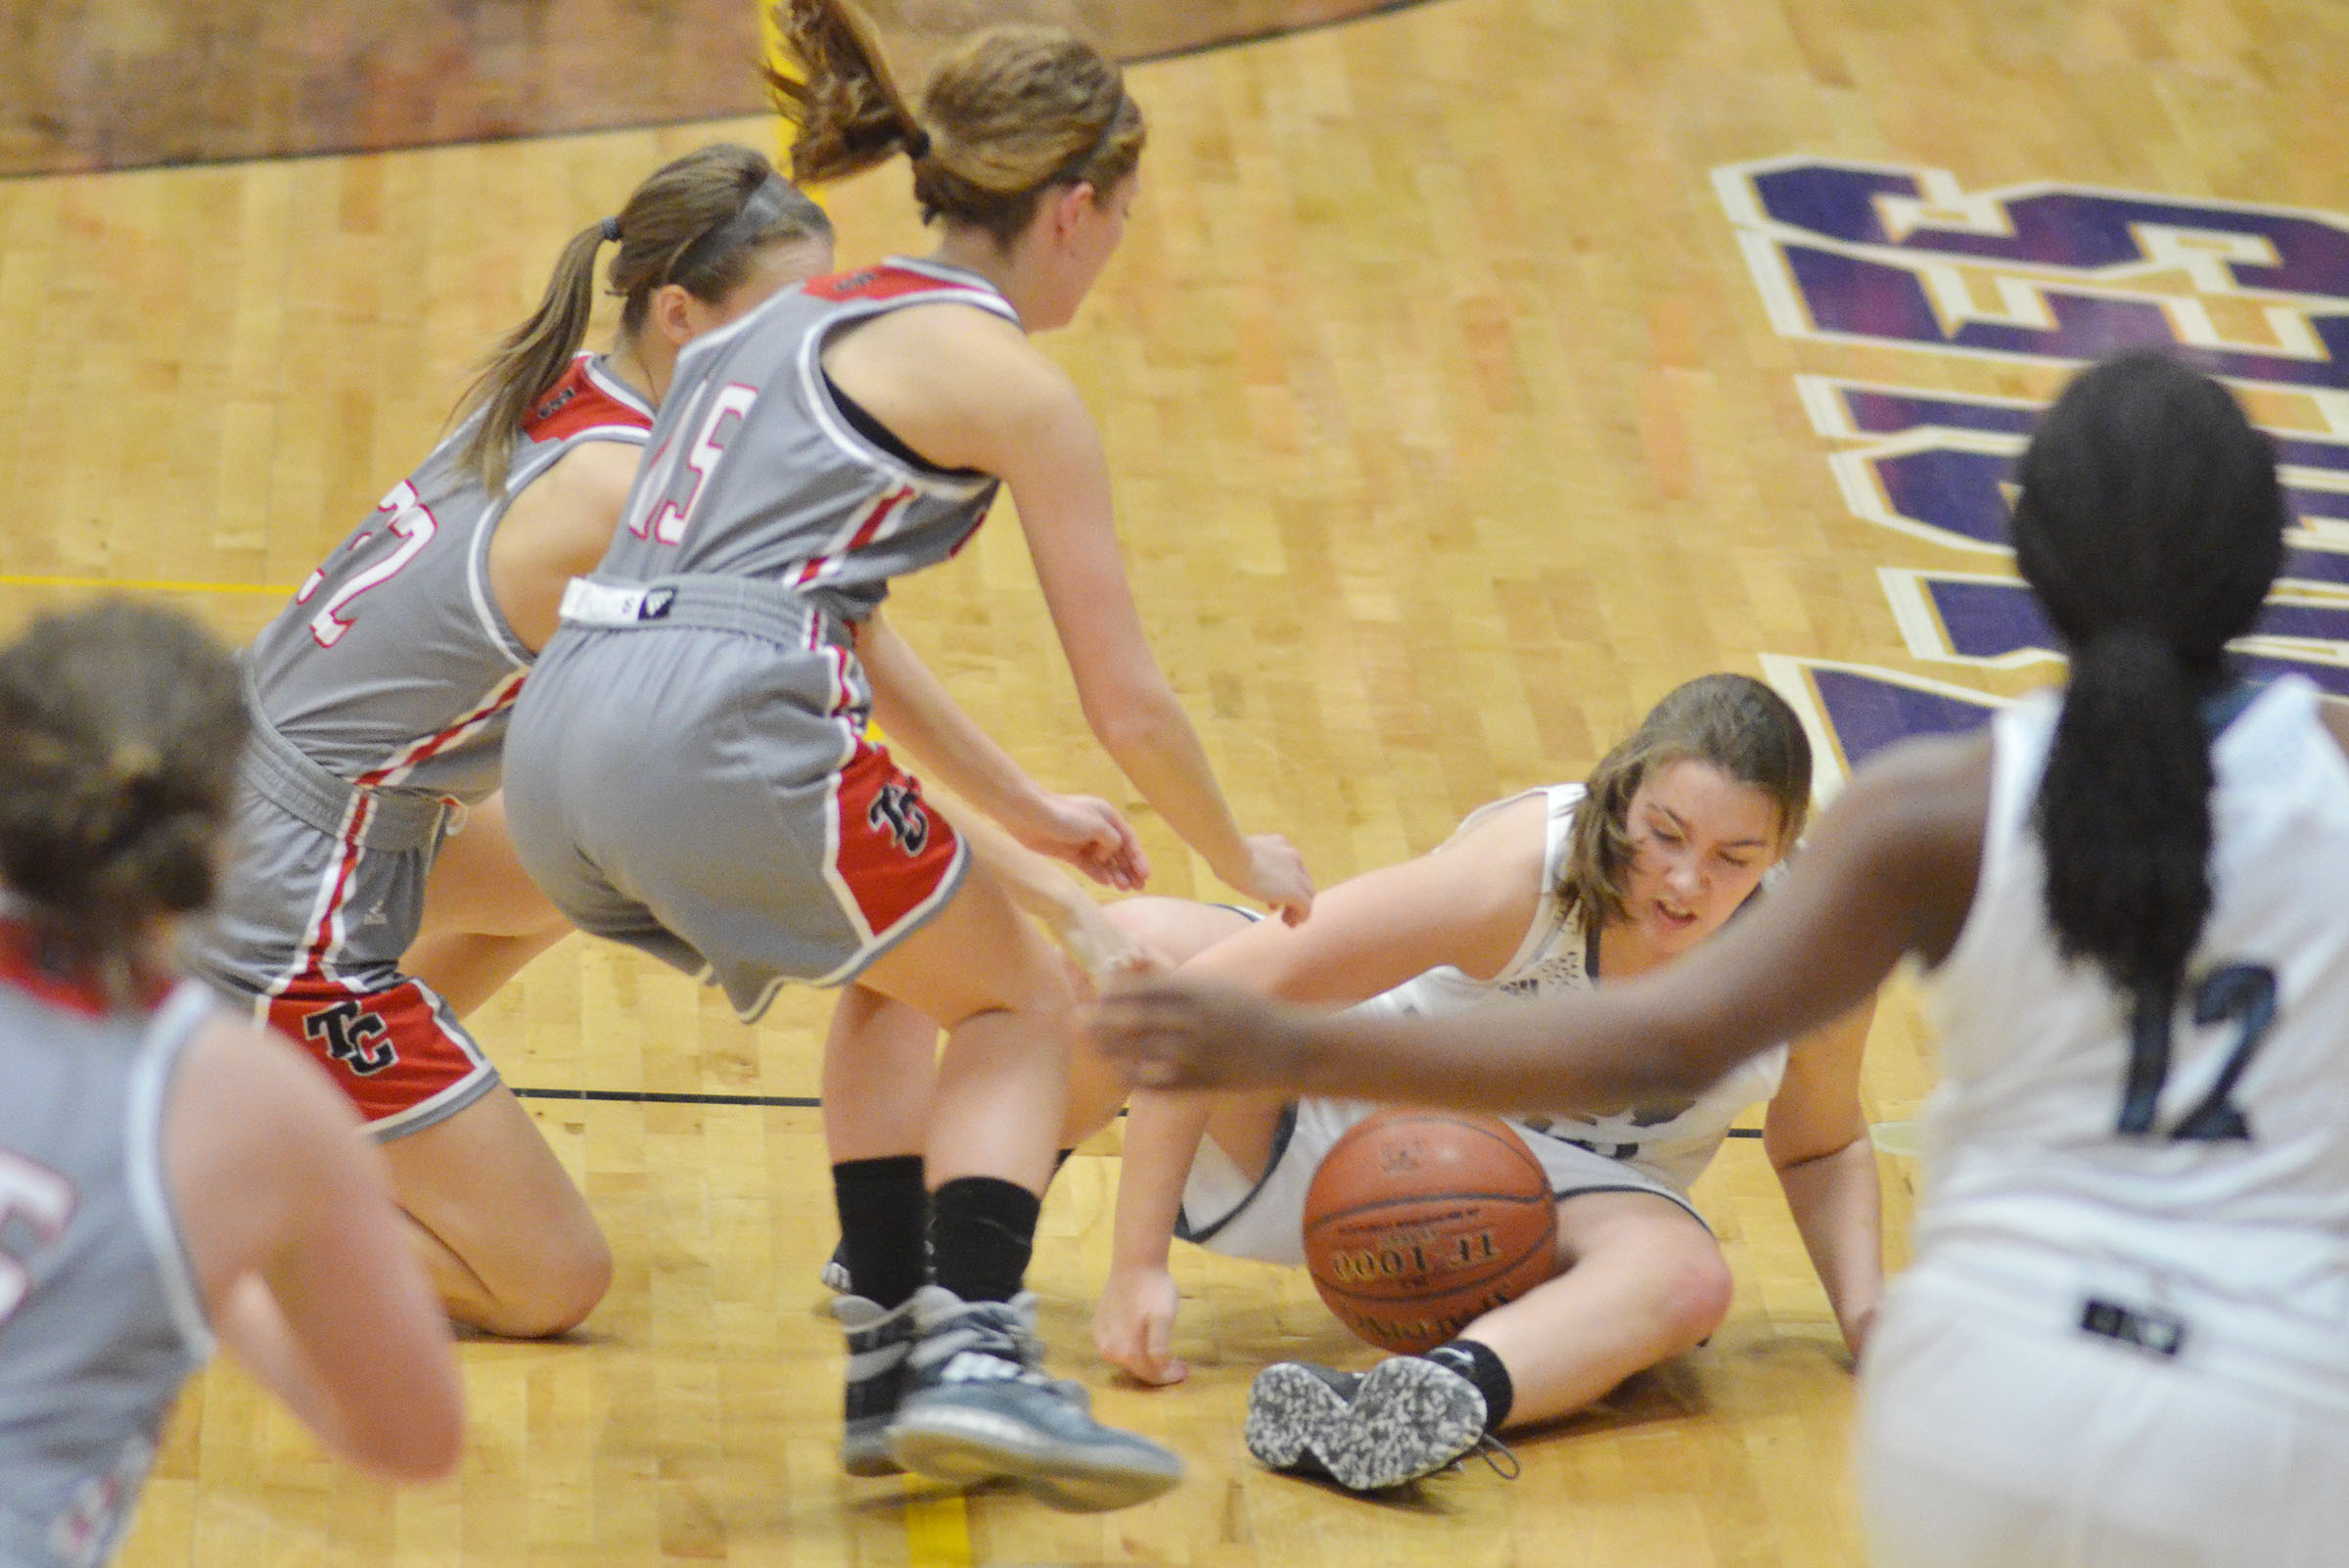 Campbellsville Middle School eighth-grader Abi Wiedewitsch fights for the ball.